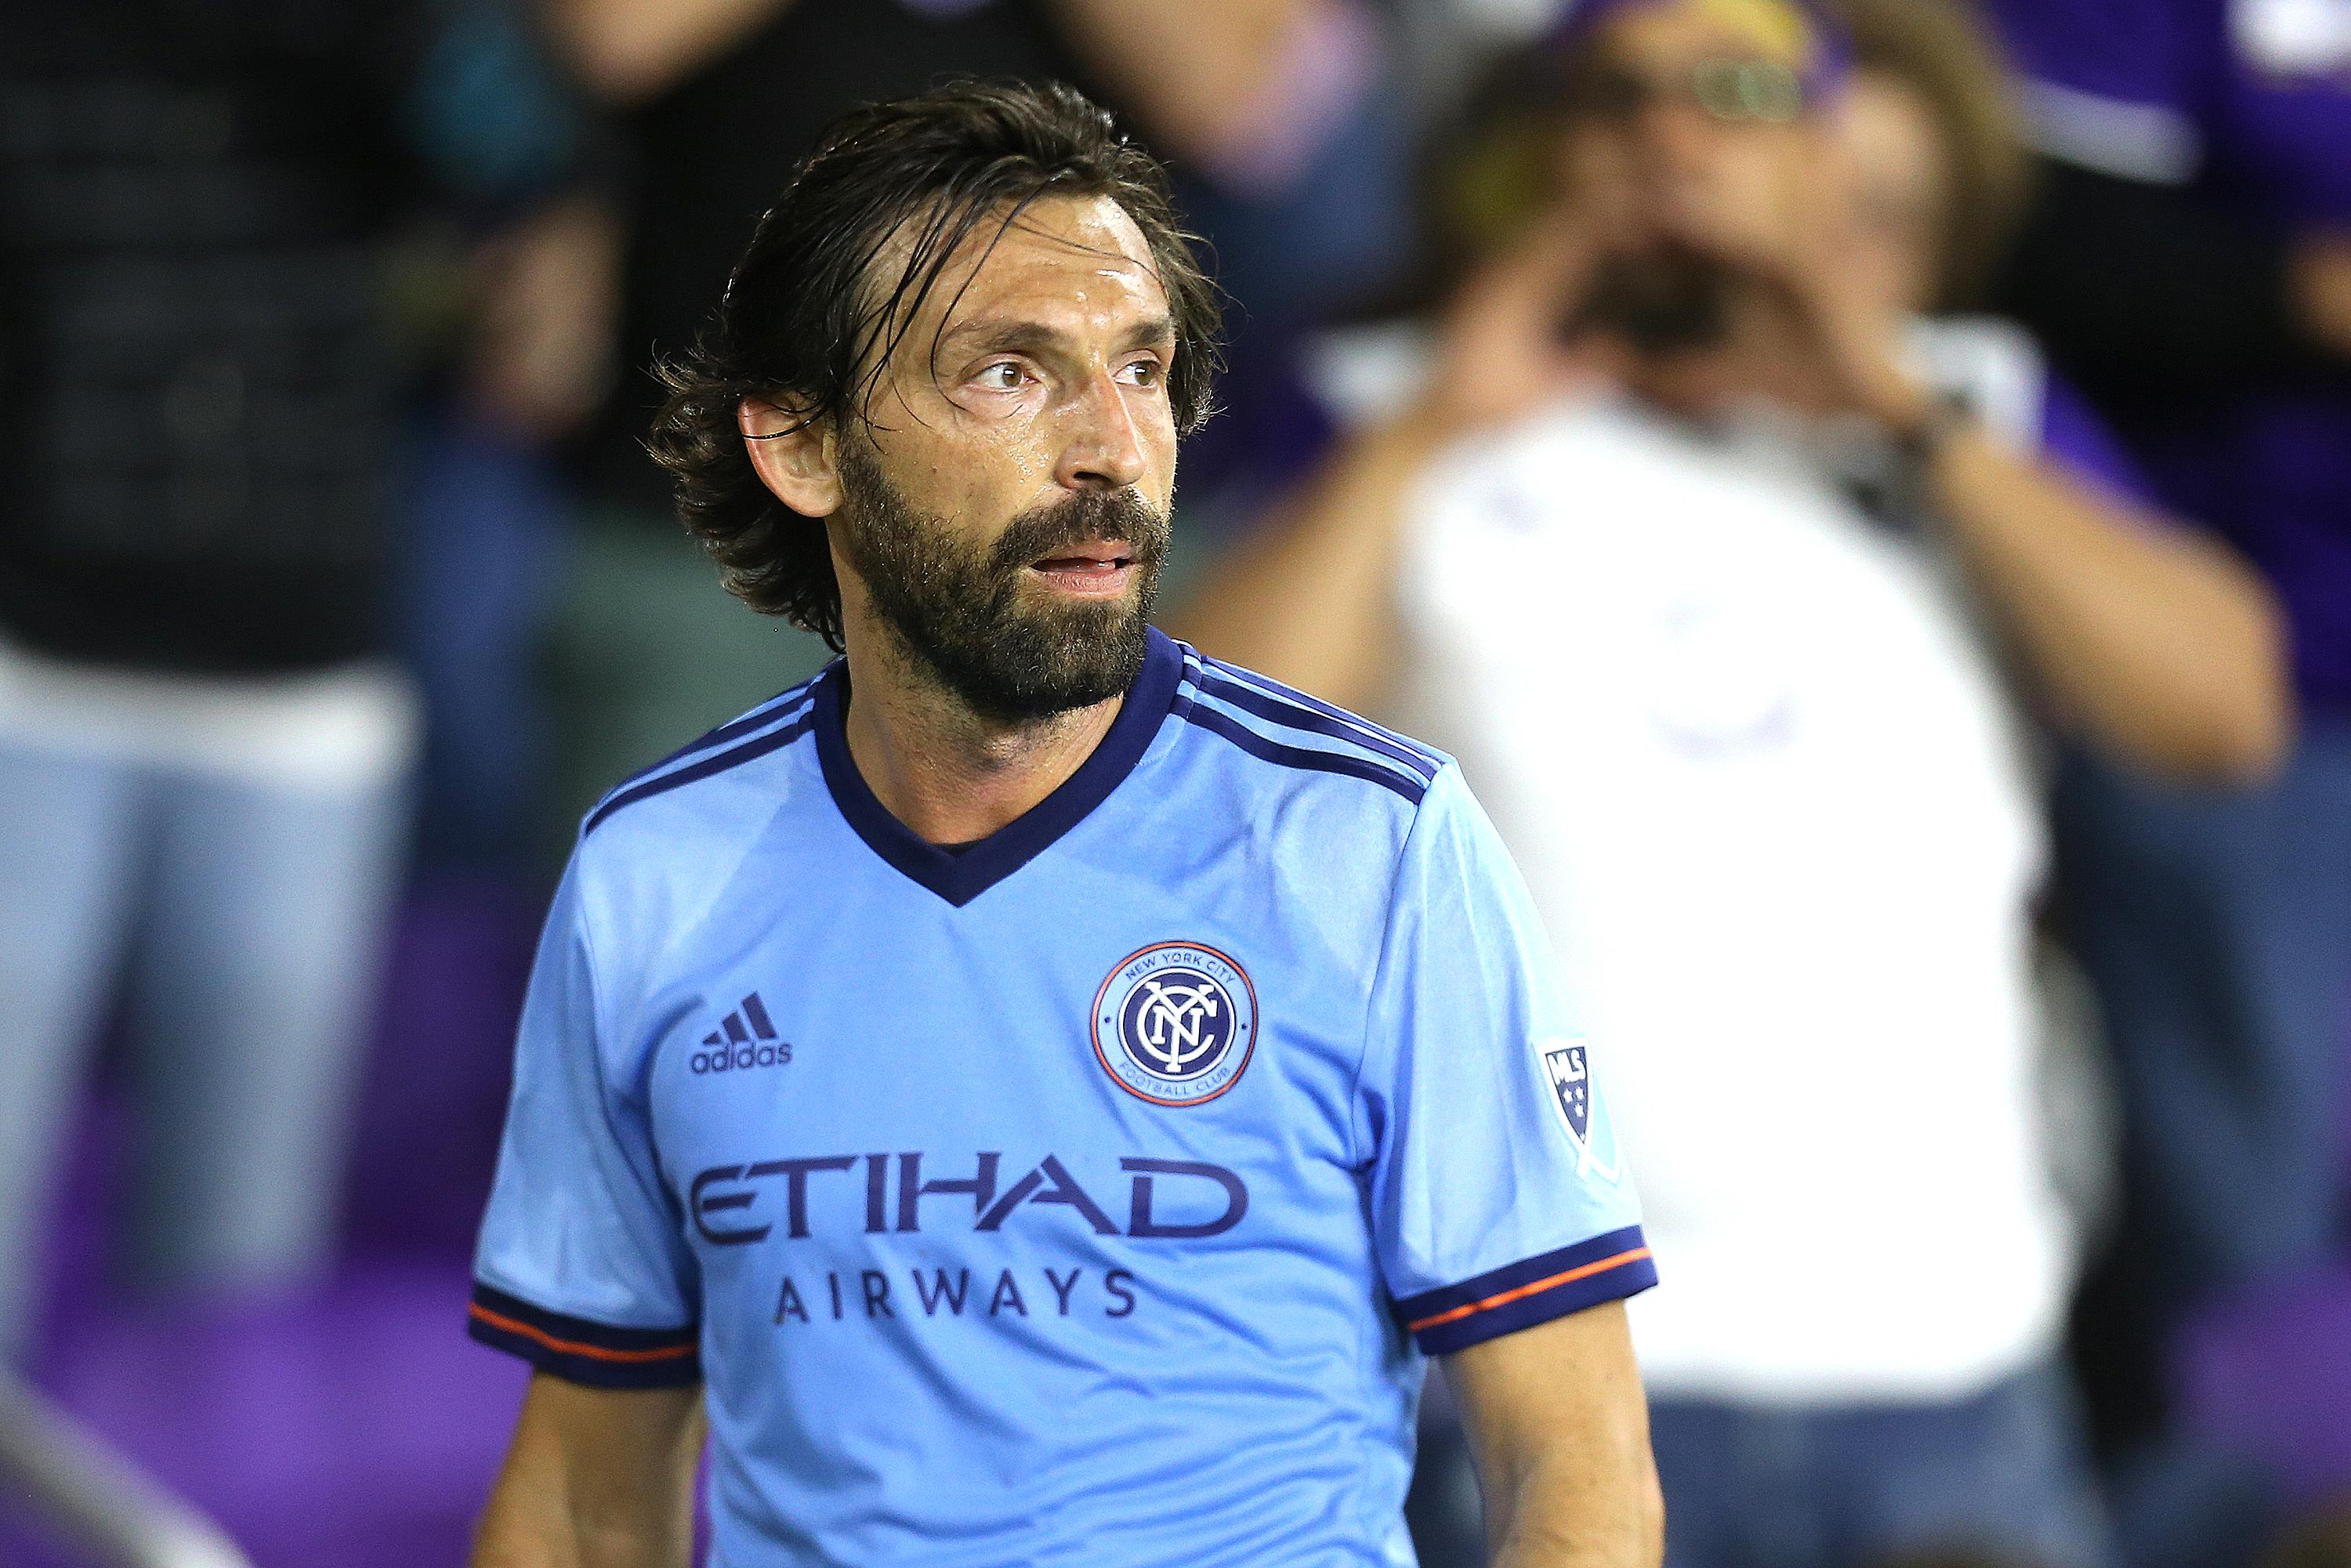 Pirlo made his final appearance for NYCFC at the weekend